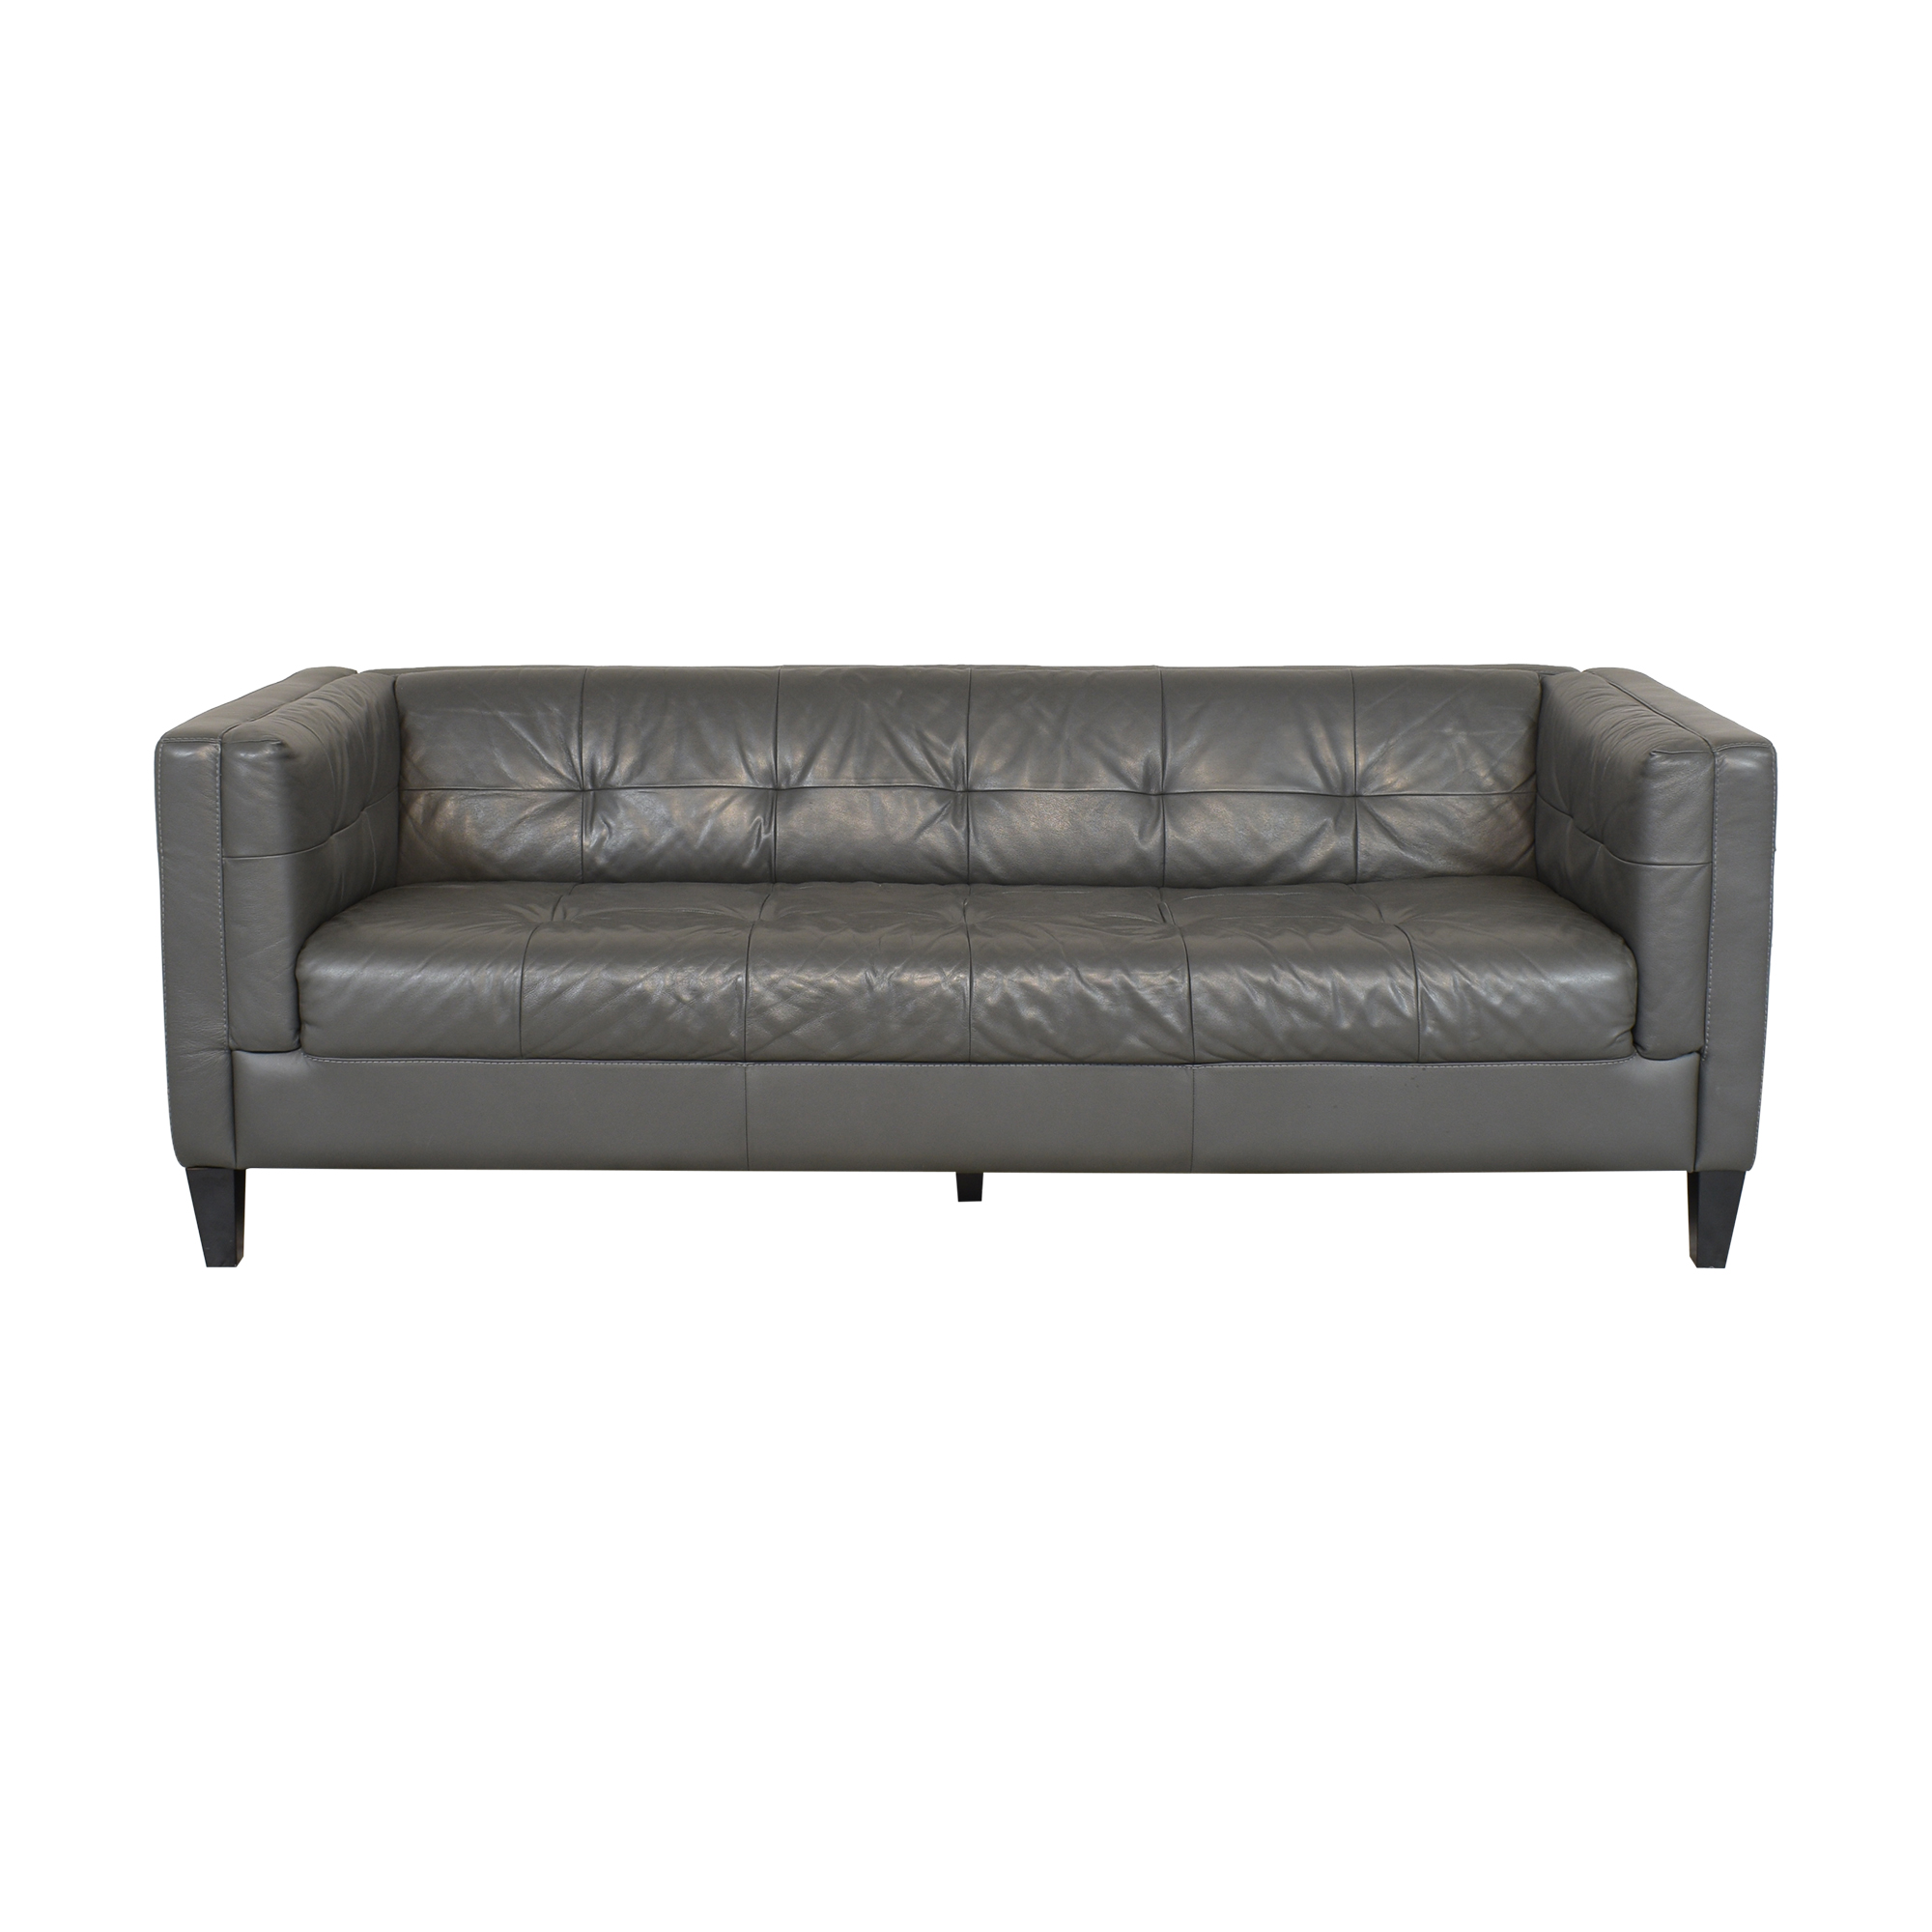 buy Chateau d'Ax Tufted Tuxedo Sofa Chateau d'Ax